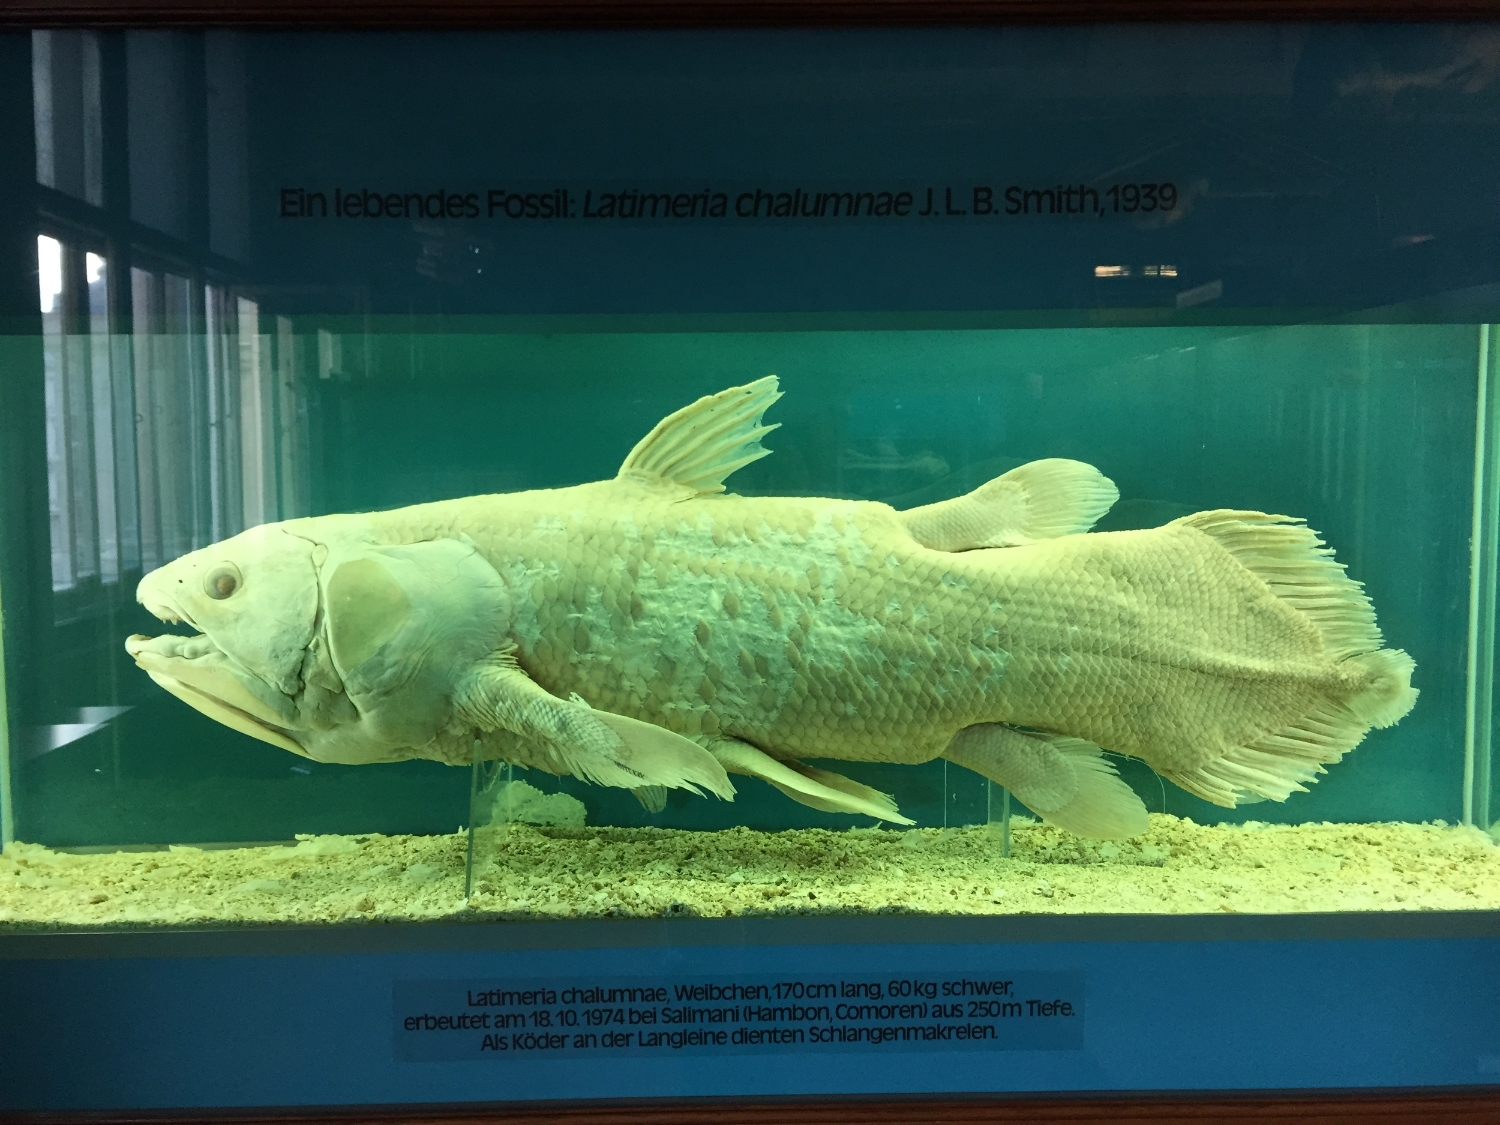 A coelacanth at the Naturhistorisches Museum in Vienna. Some species just seem to go on and on . . . and on and on. They don't have expiration dates. Is this a problem for the theory of species selection?